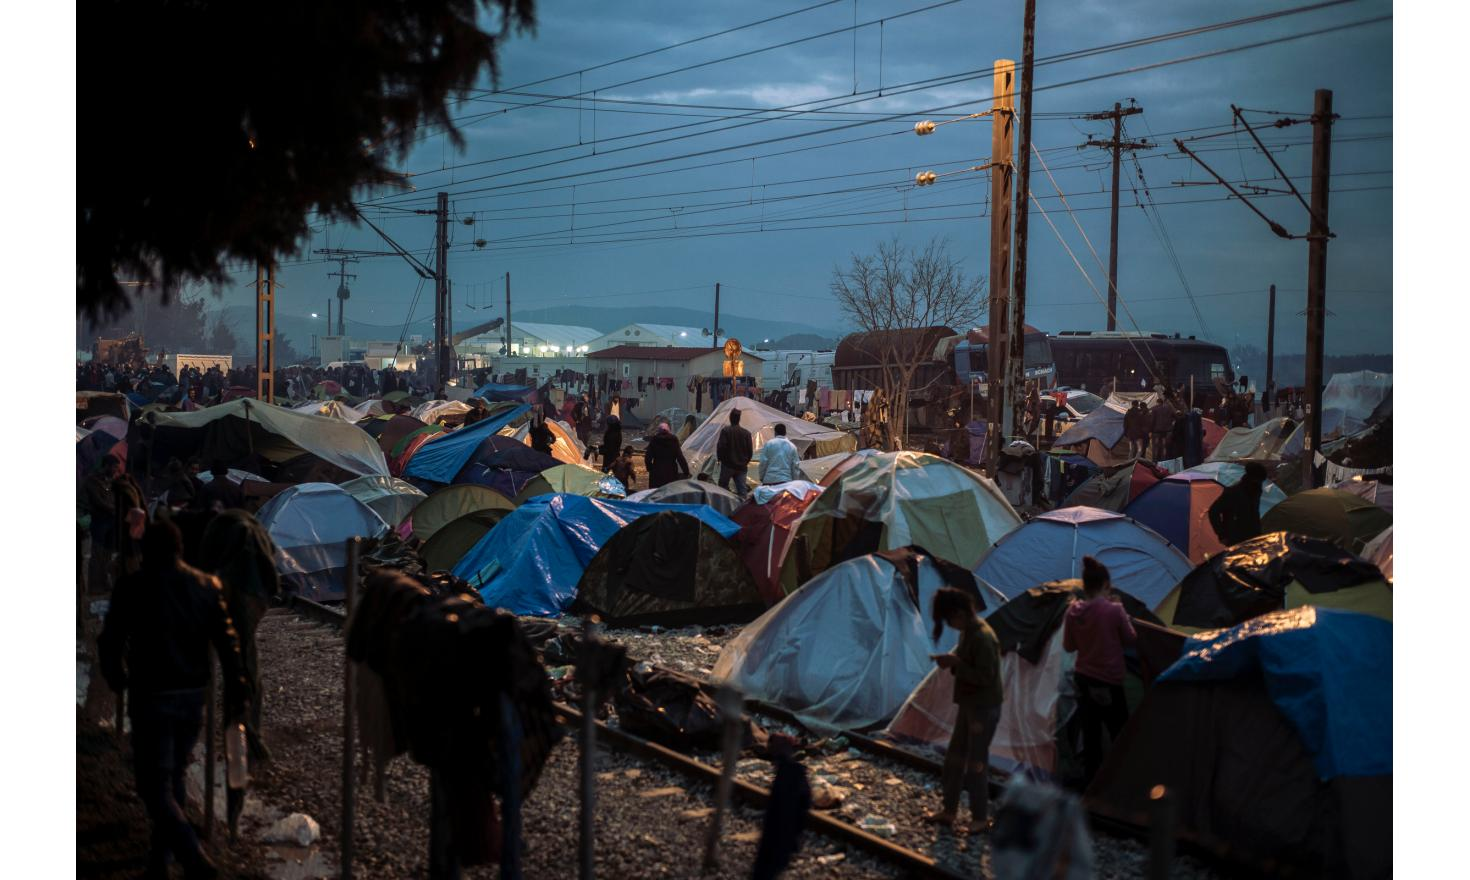 Idomeni refugees camp (macedonian border)